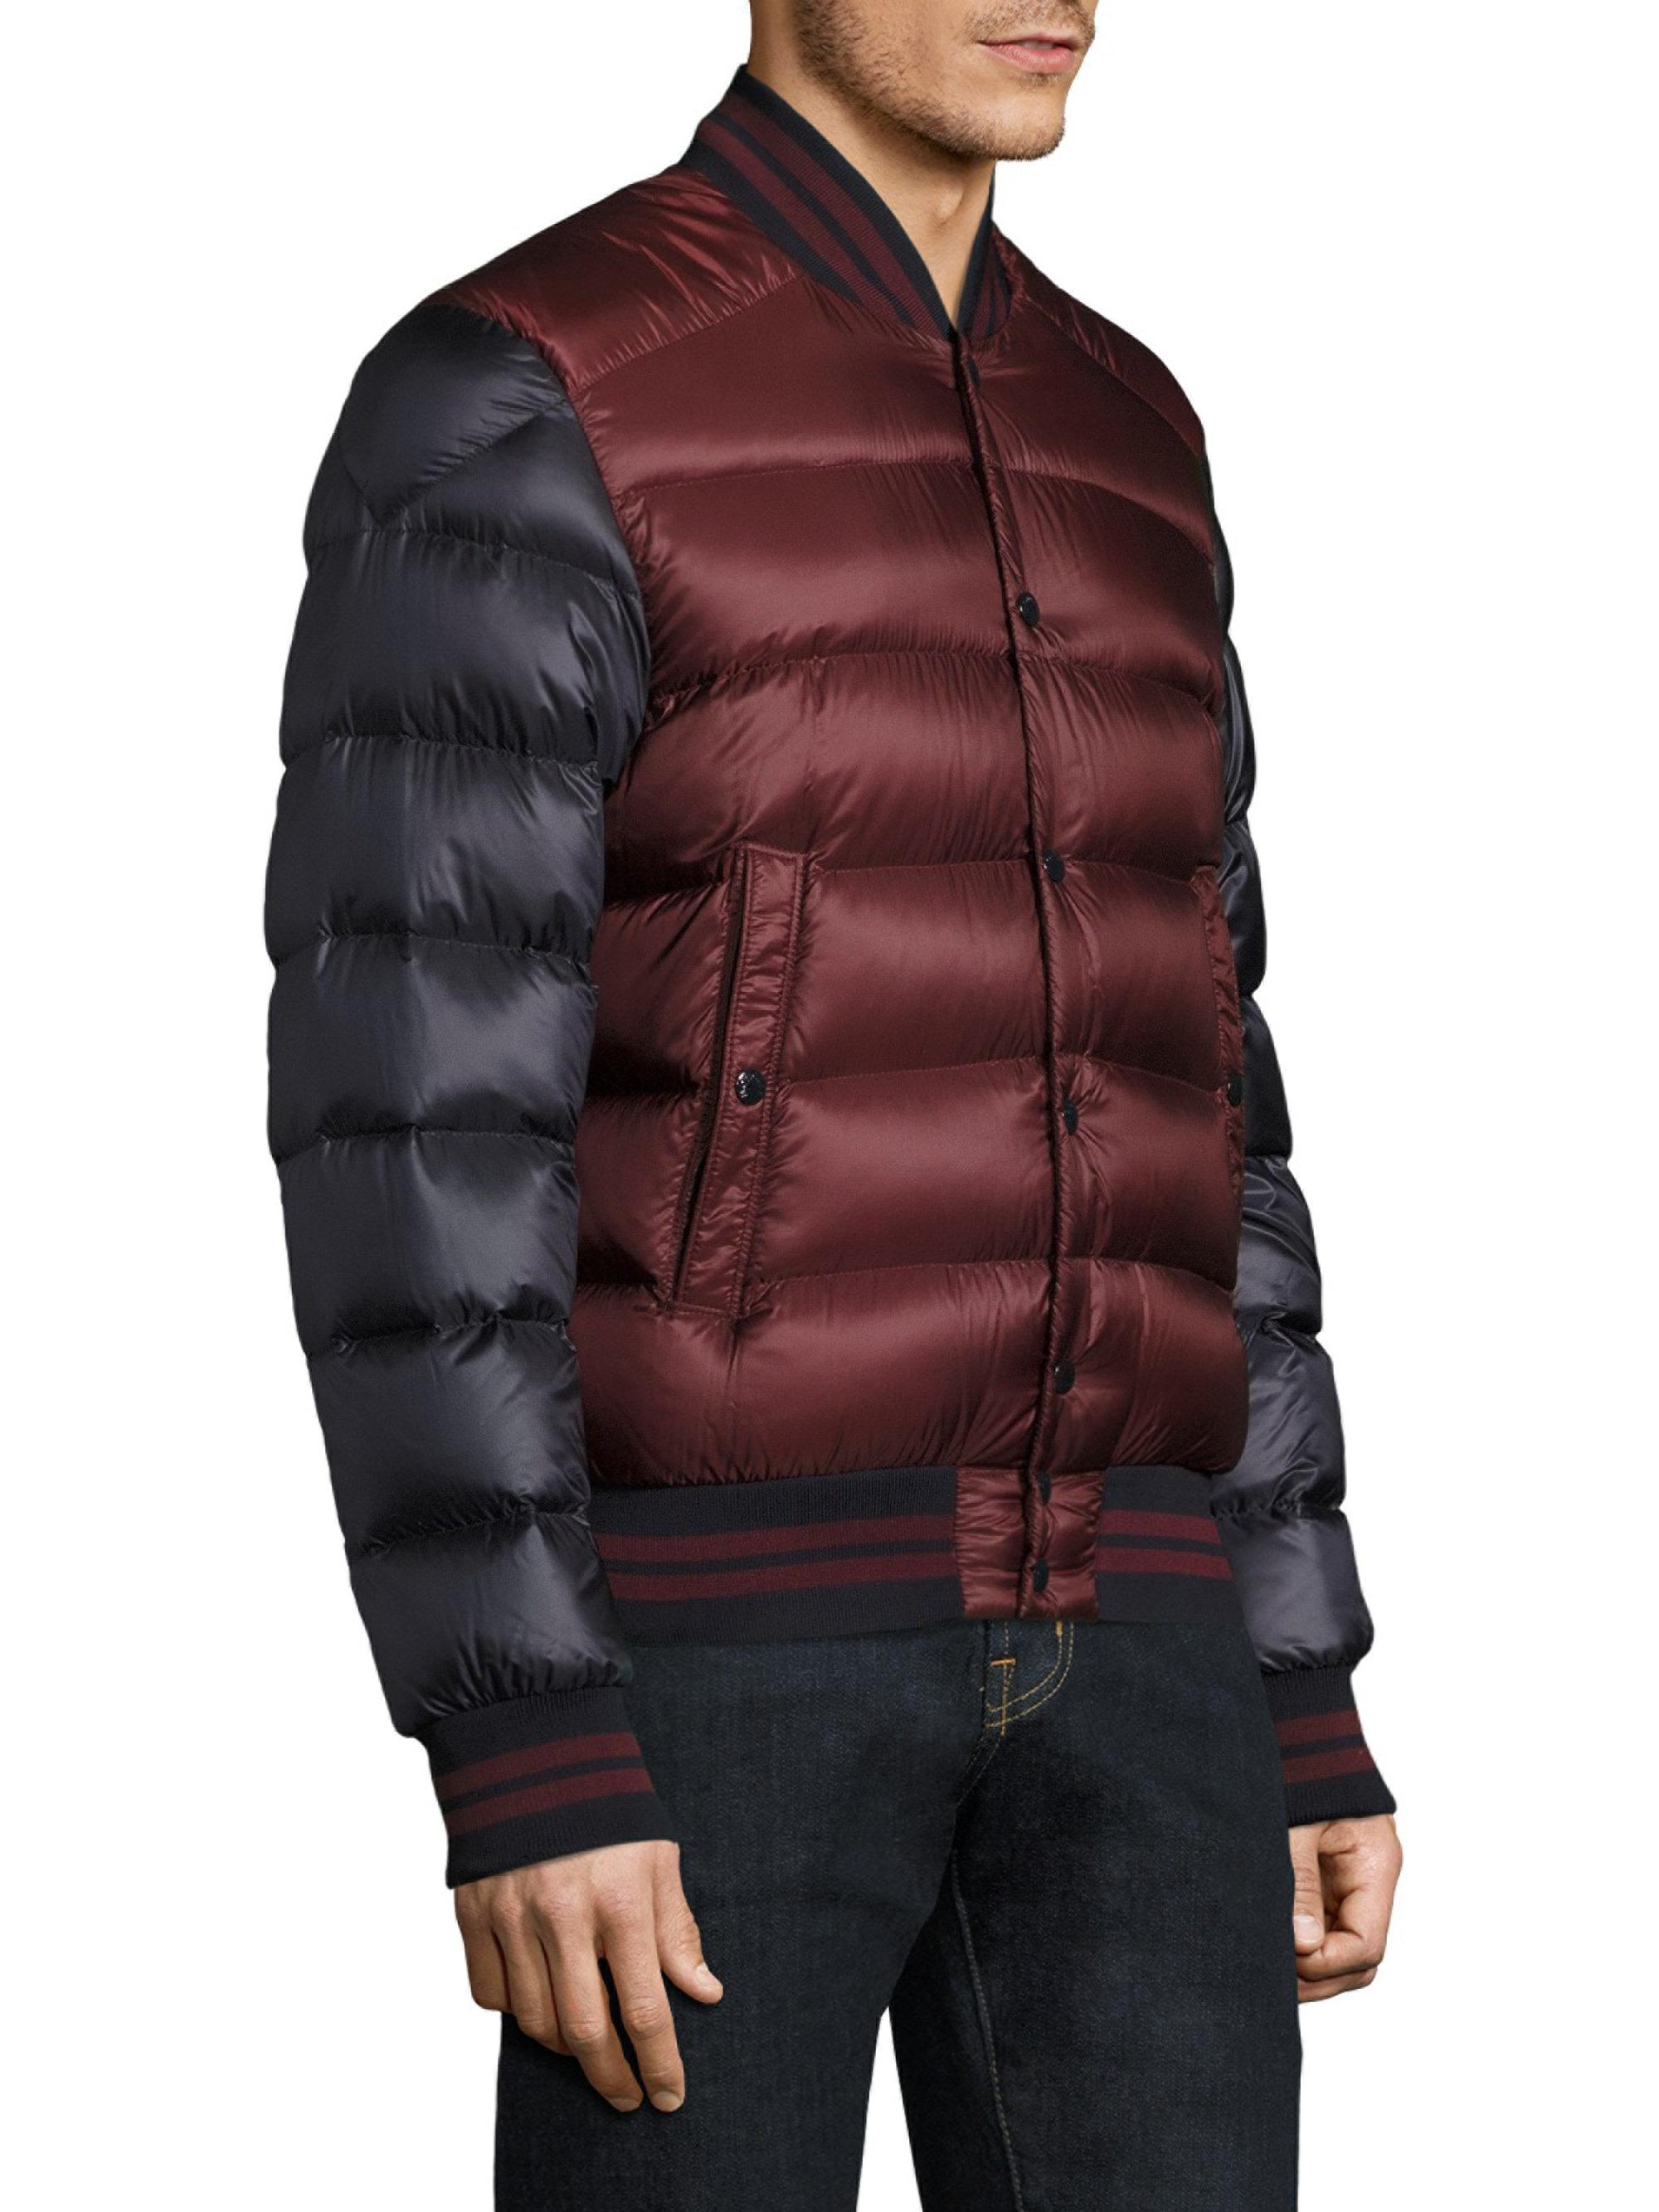 083c15cb7 Moncler Bradford Two-tone Finished Puffer Jacket in Red for Men - Lyst